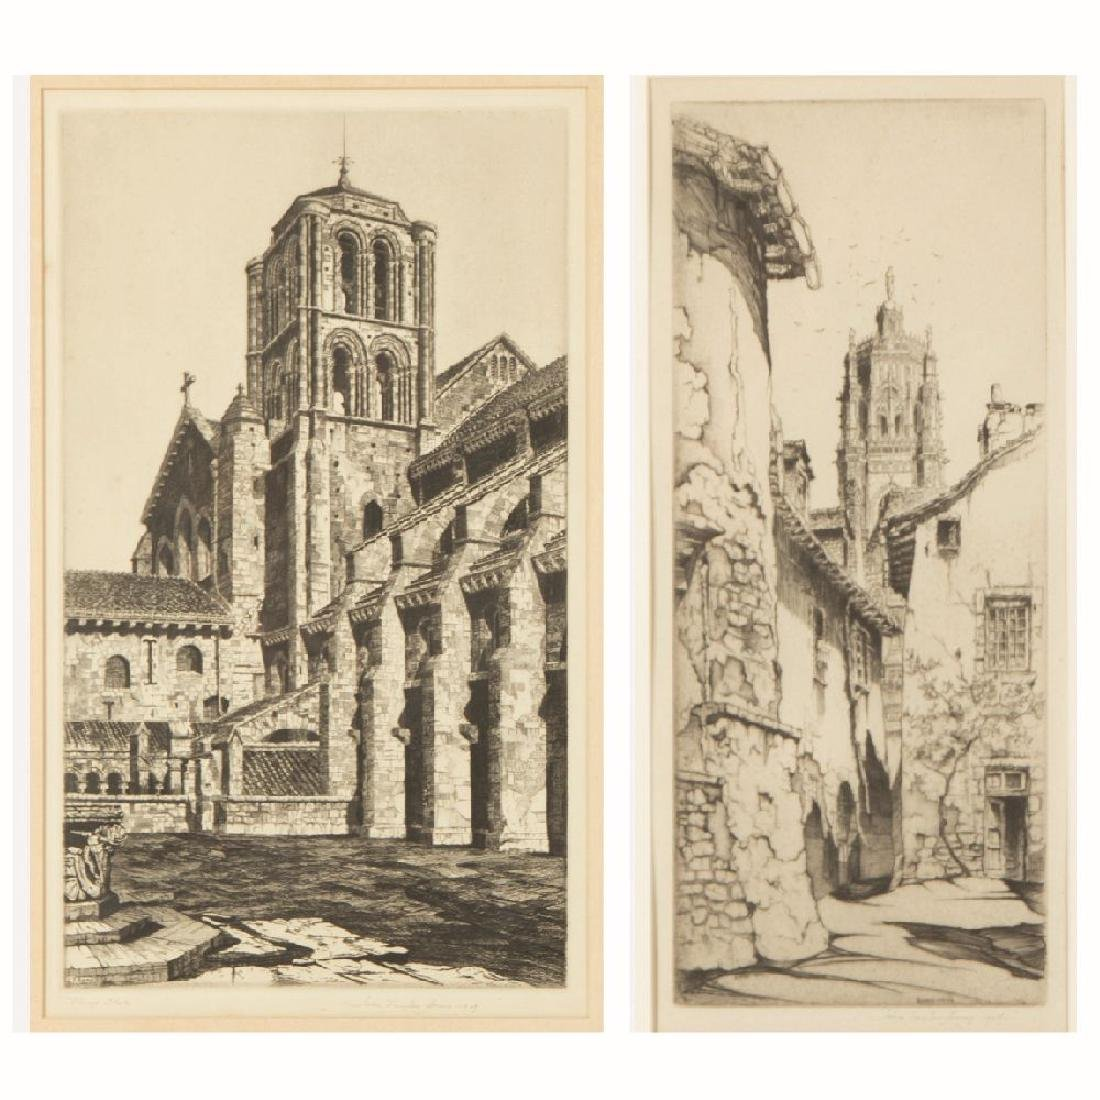 John Taylor Arms (1887-1953) Rodez- The Tower, Notre